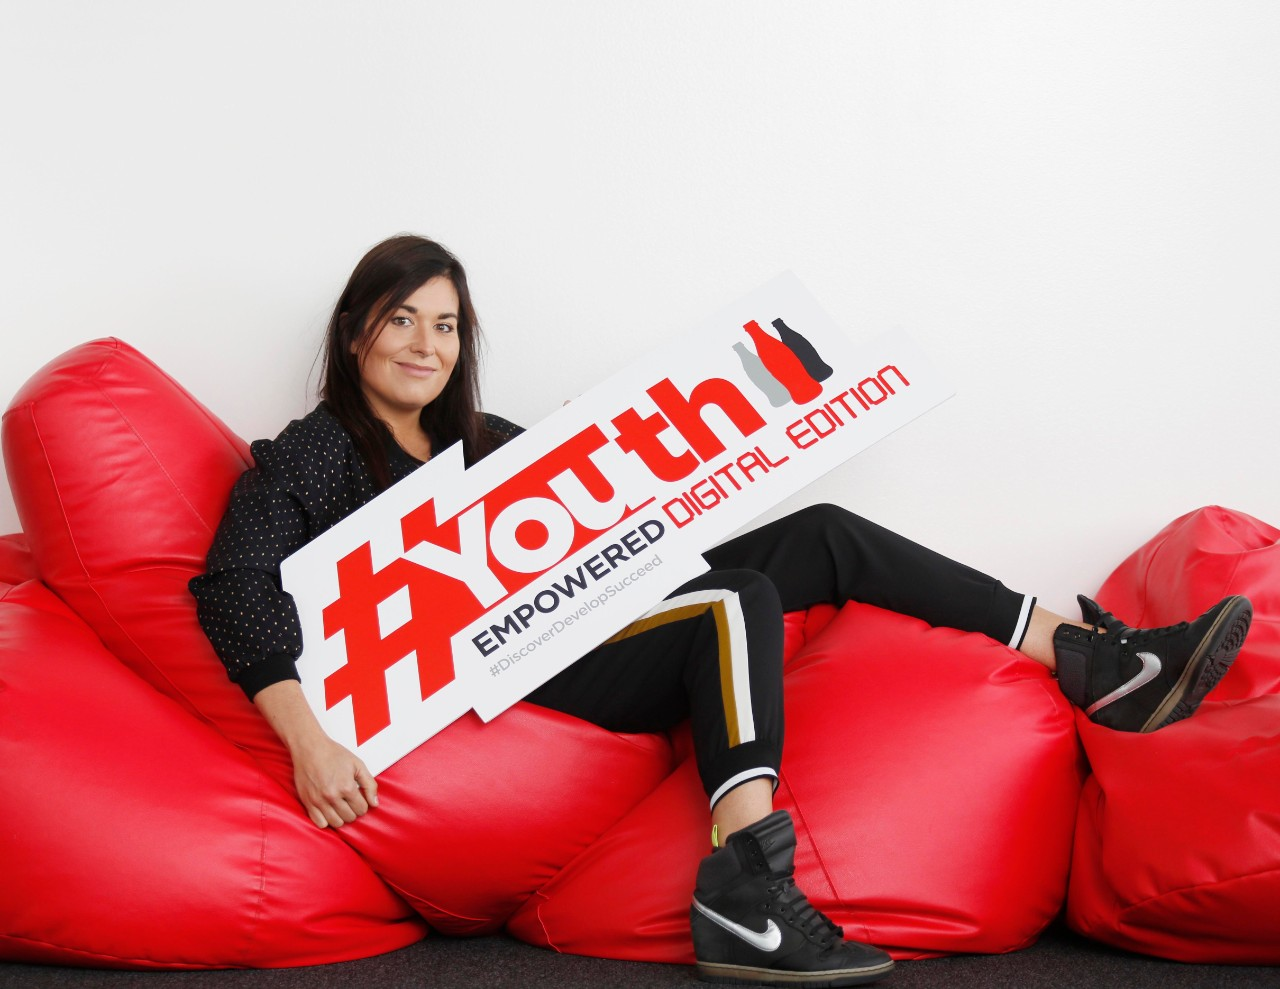 woman-withsign-couch